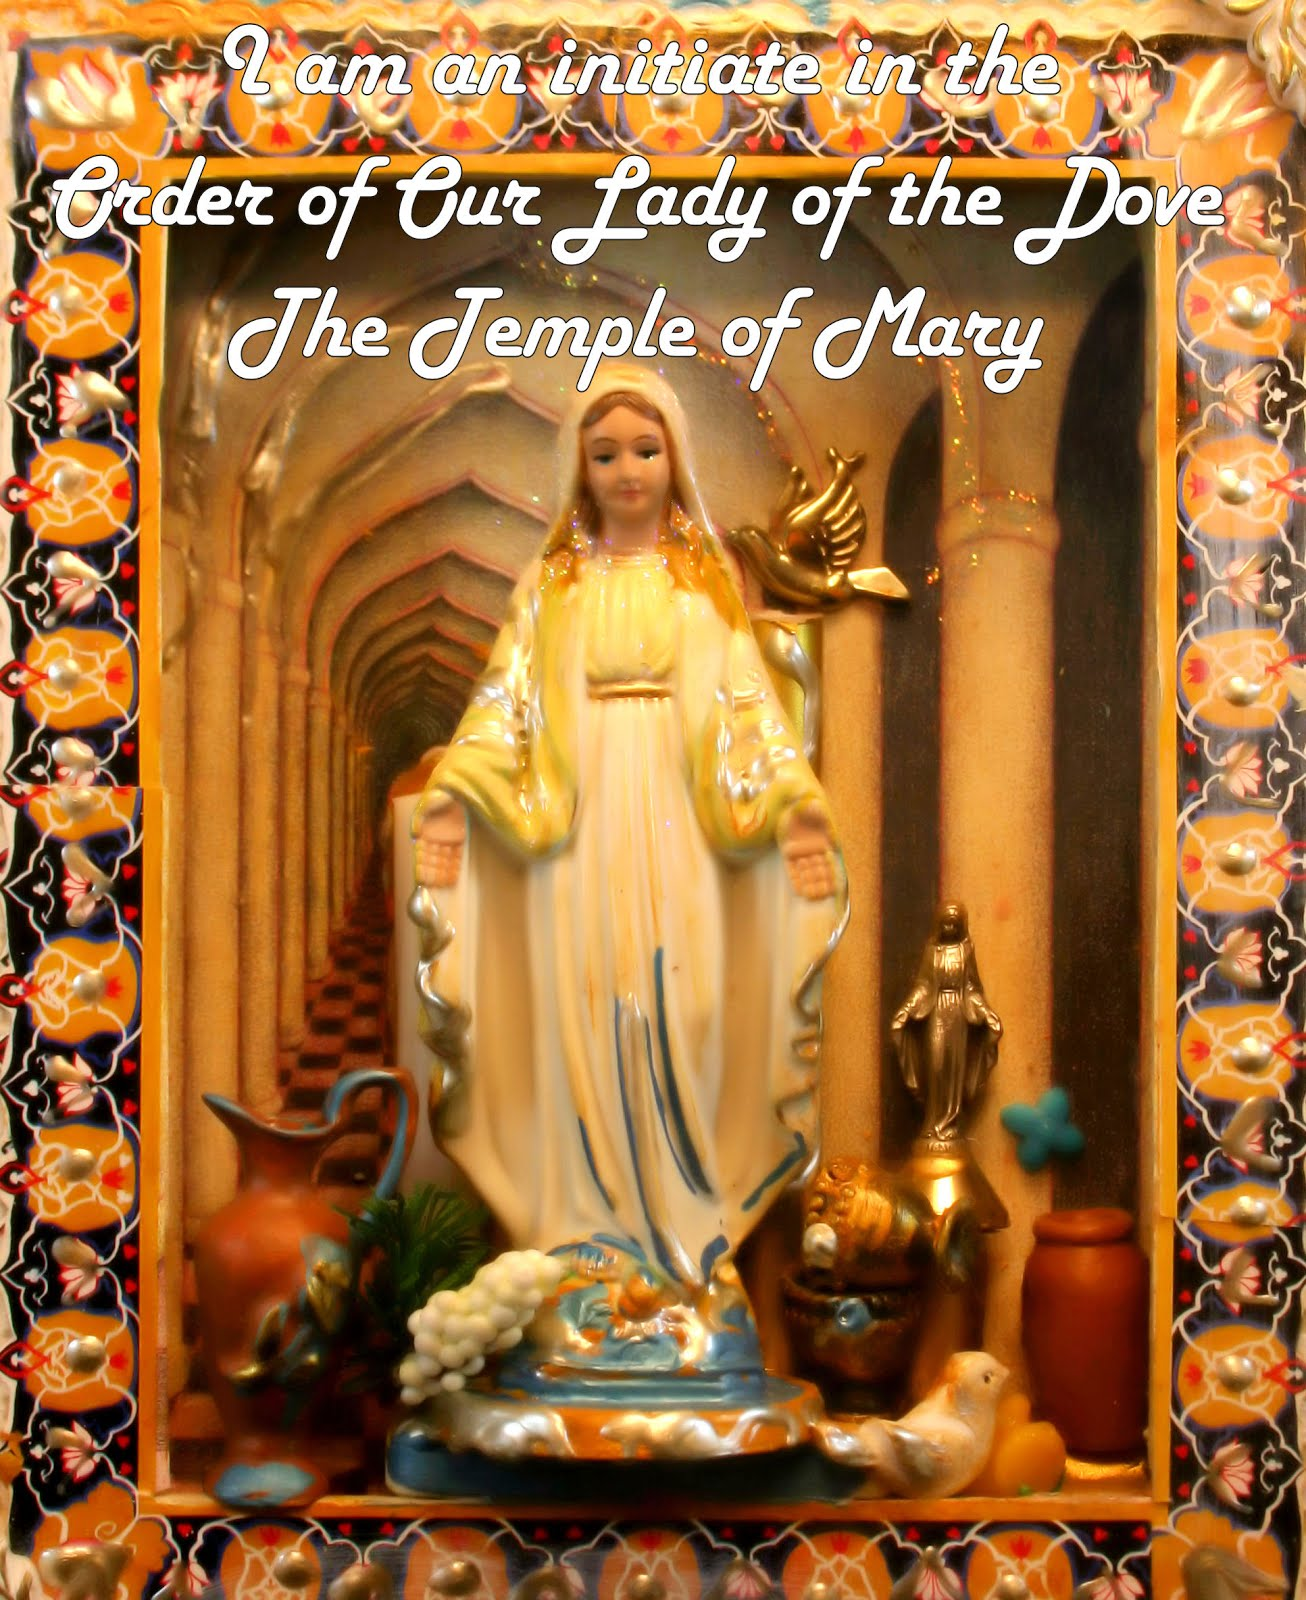 Order of Our Lady of the Dove